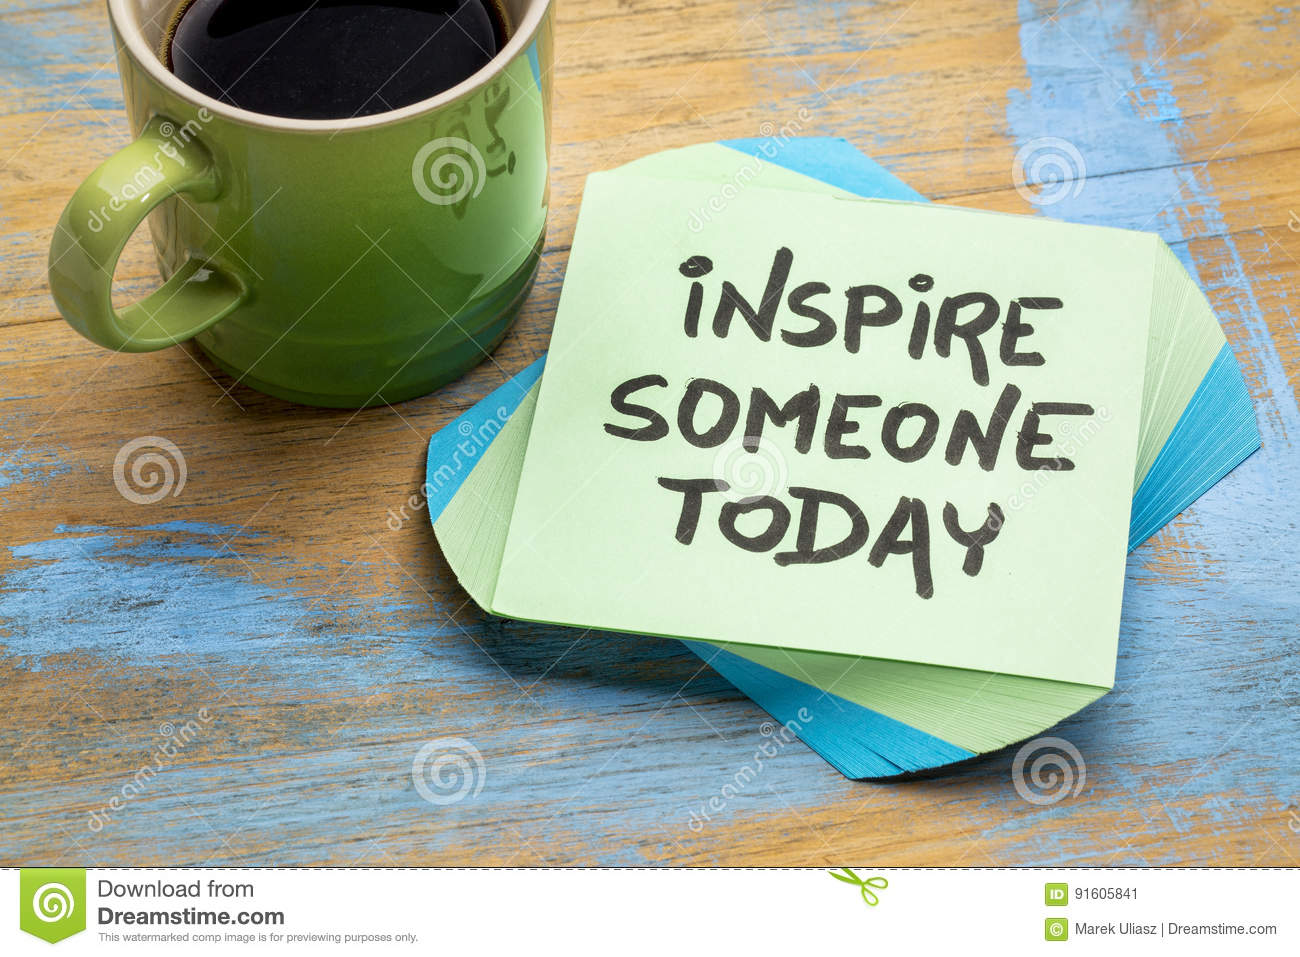 Inspire someone today note with coffee